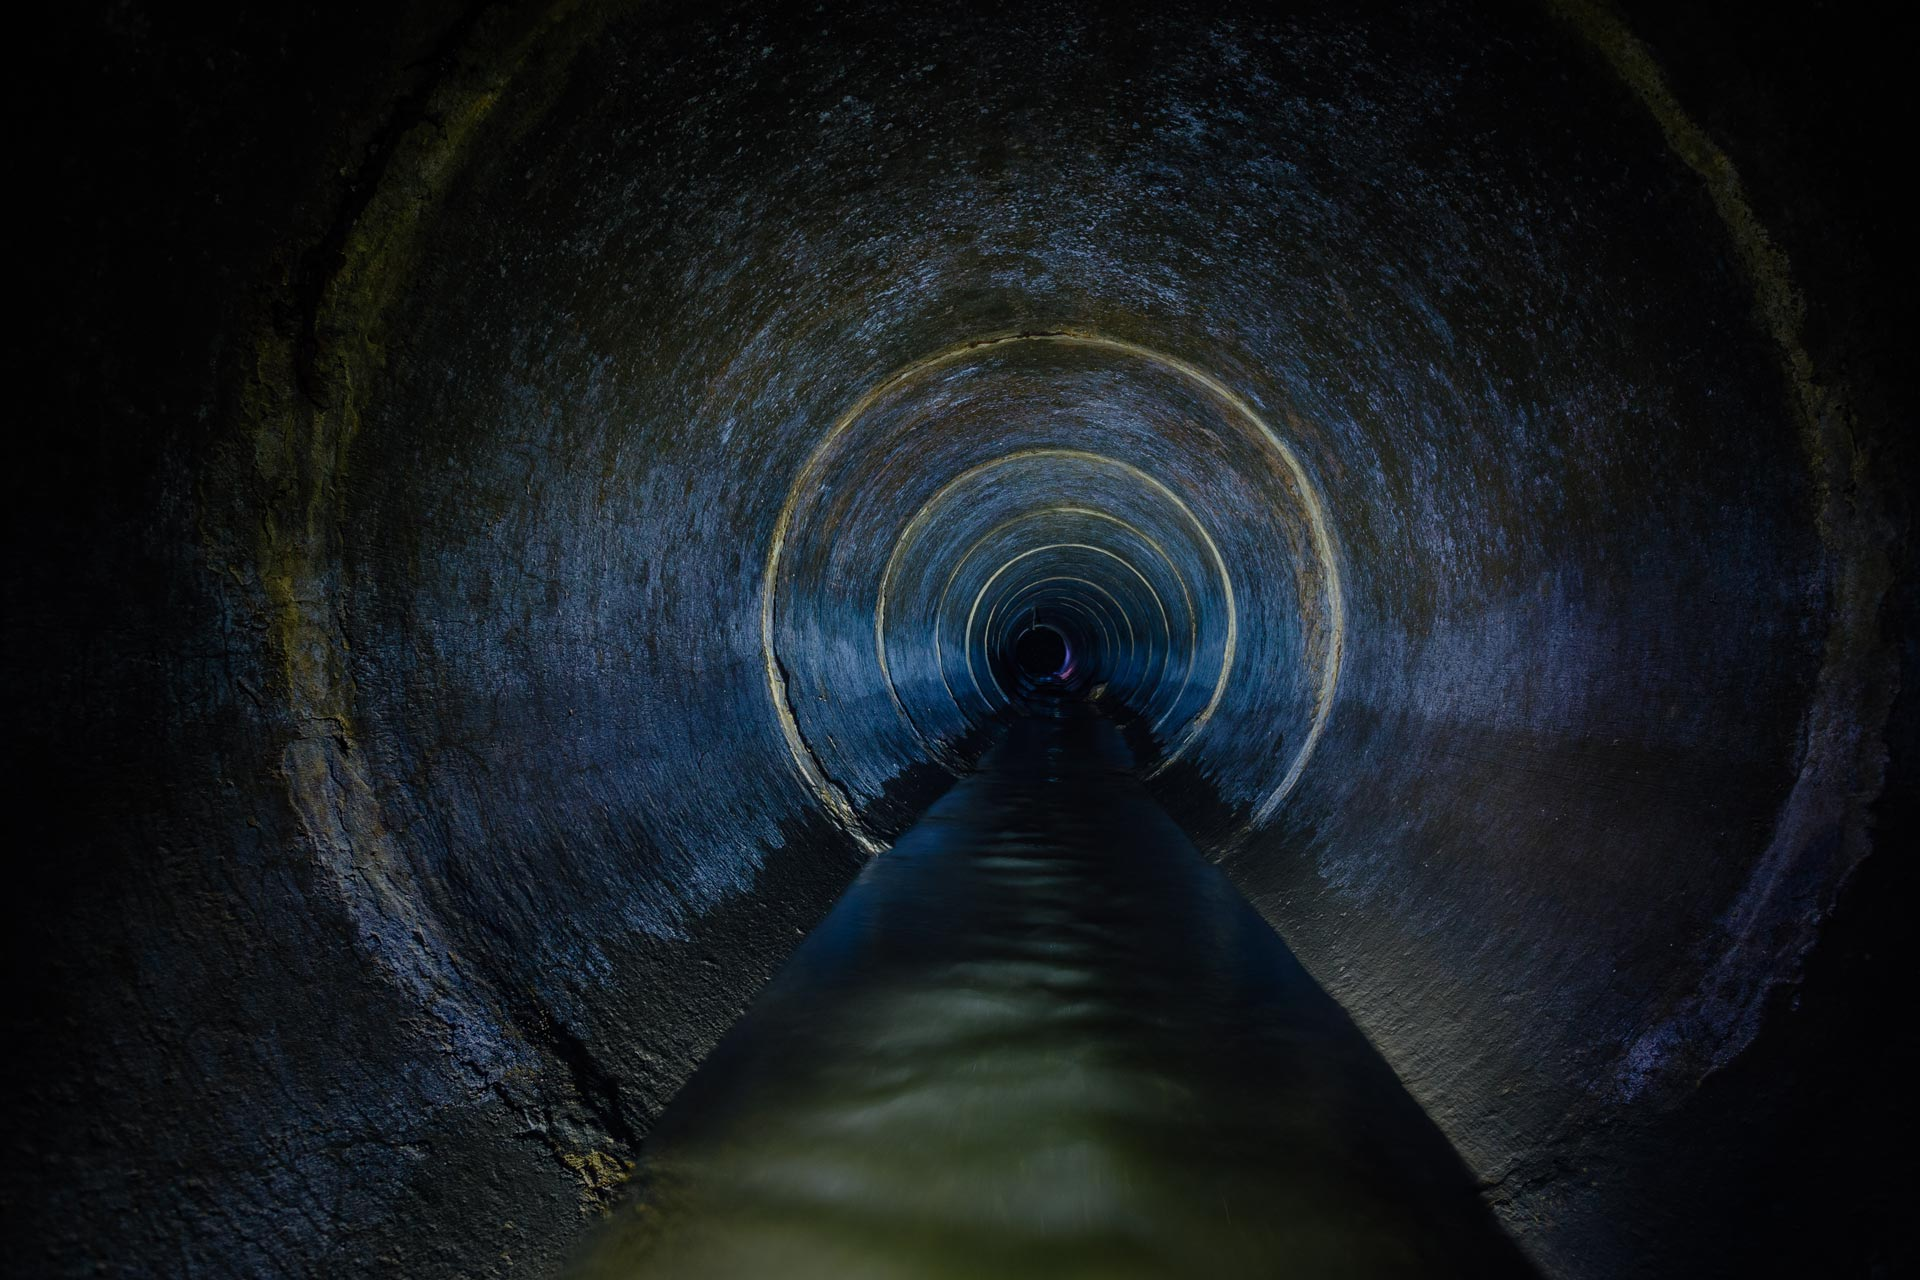 Image of the inside of a sewer